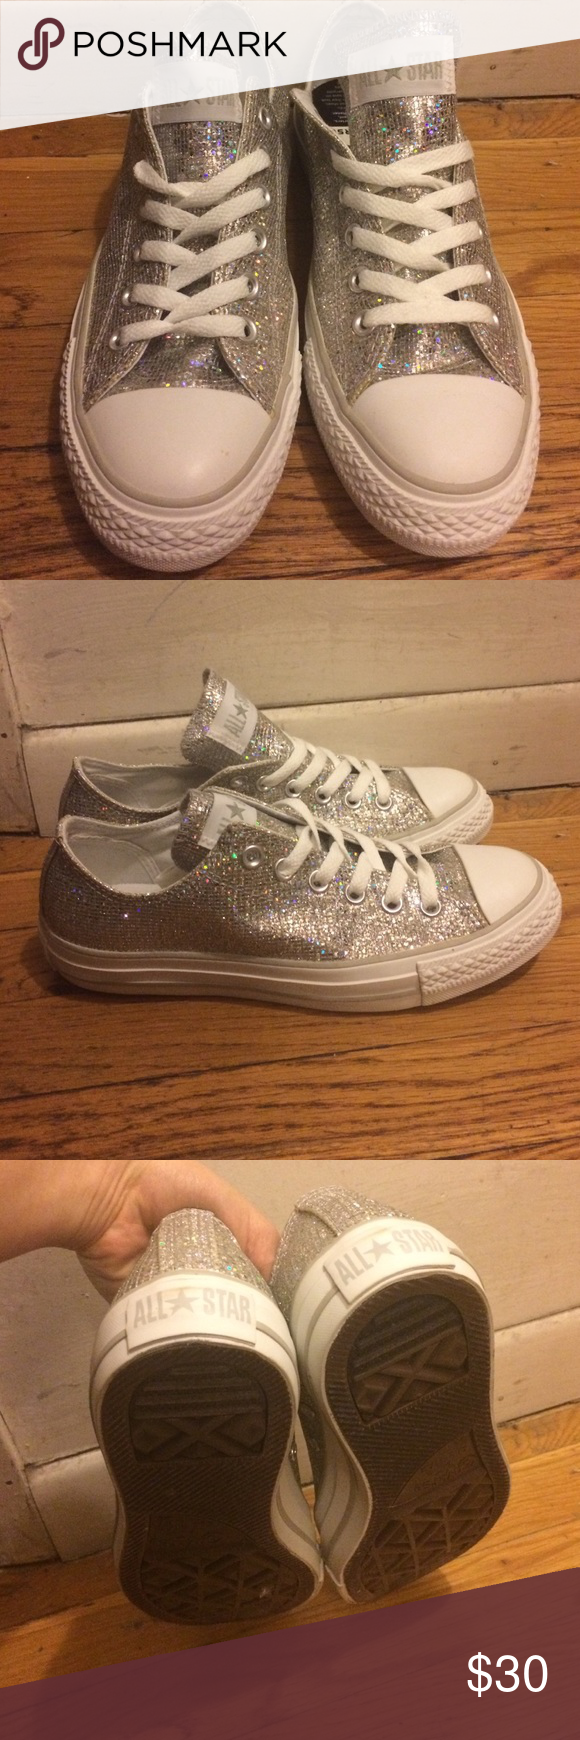 Converse all star silver sparkle shoes